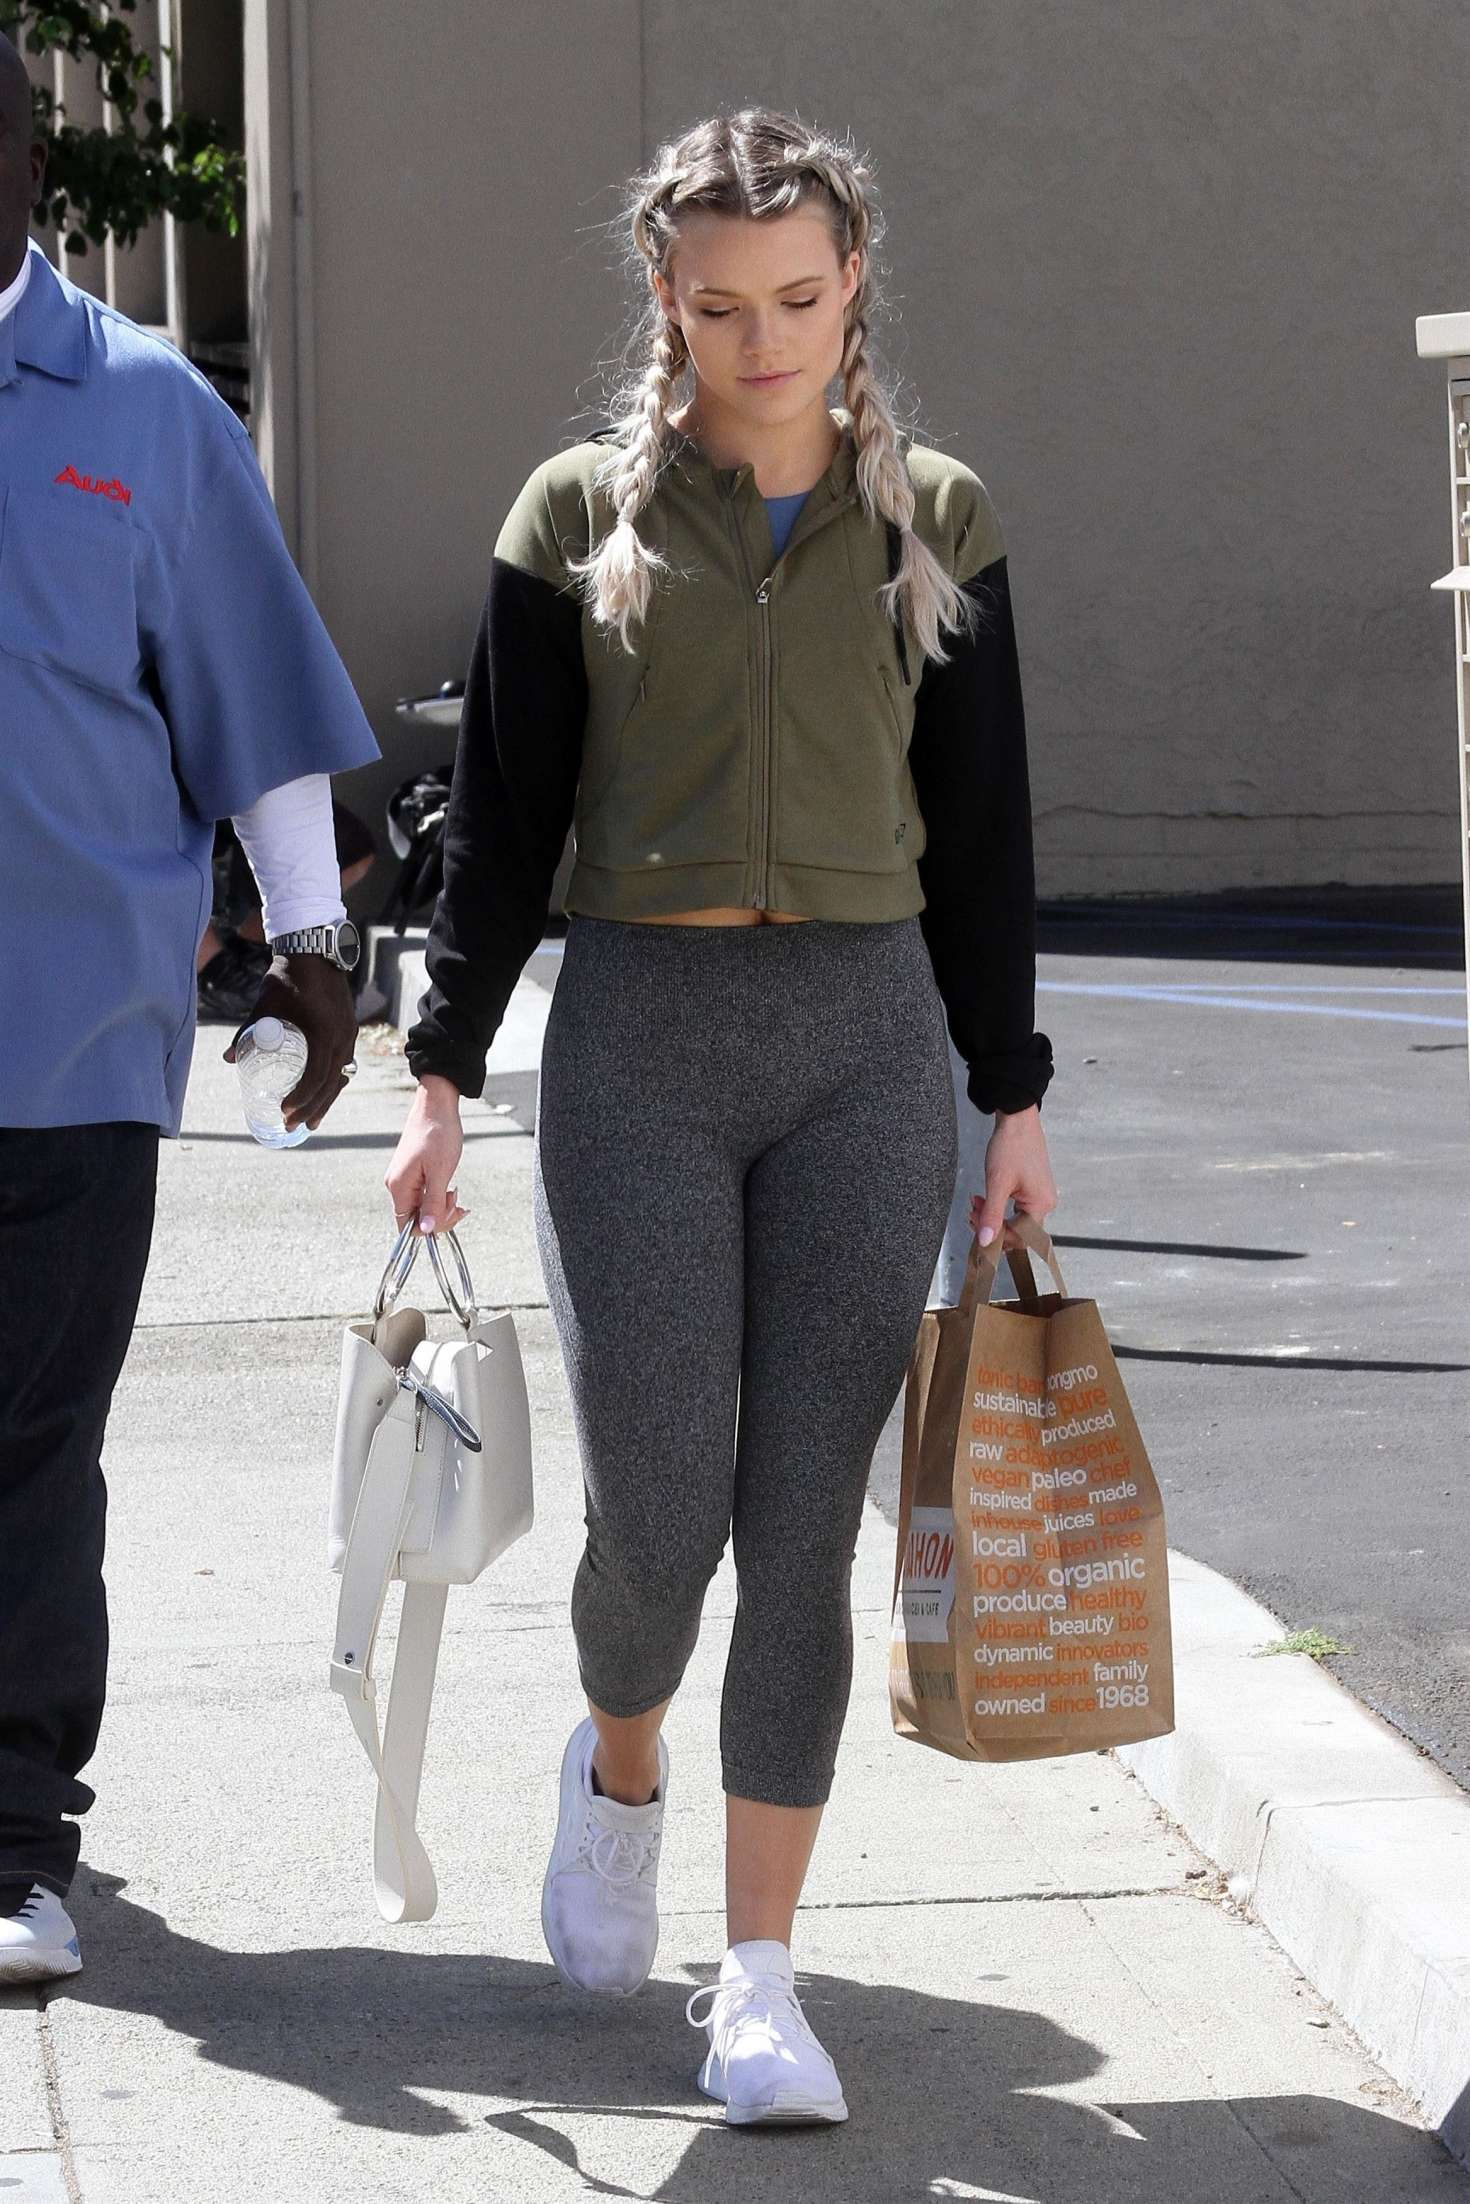 94957eb0489 ... Shopping in Los Angeles. Witney Carson in Tights -07